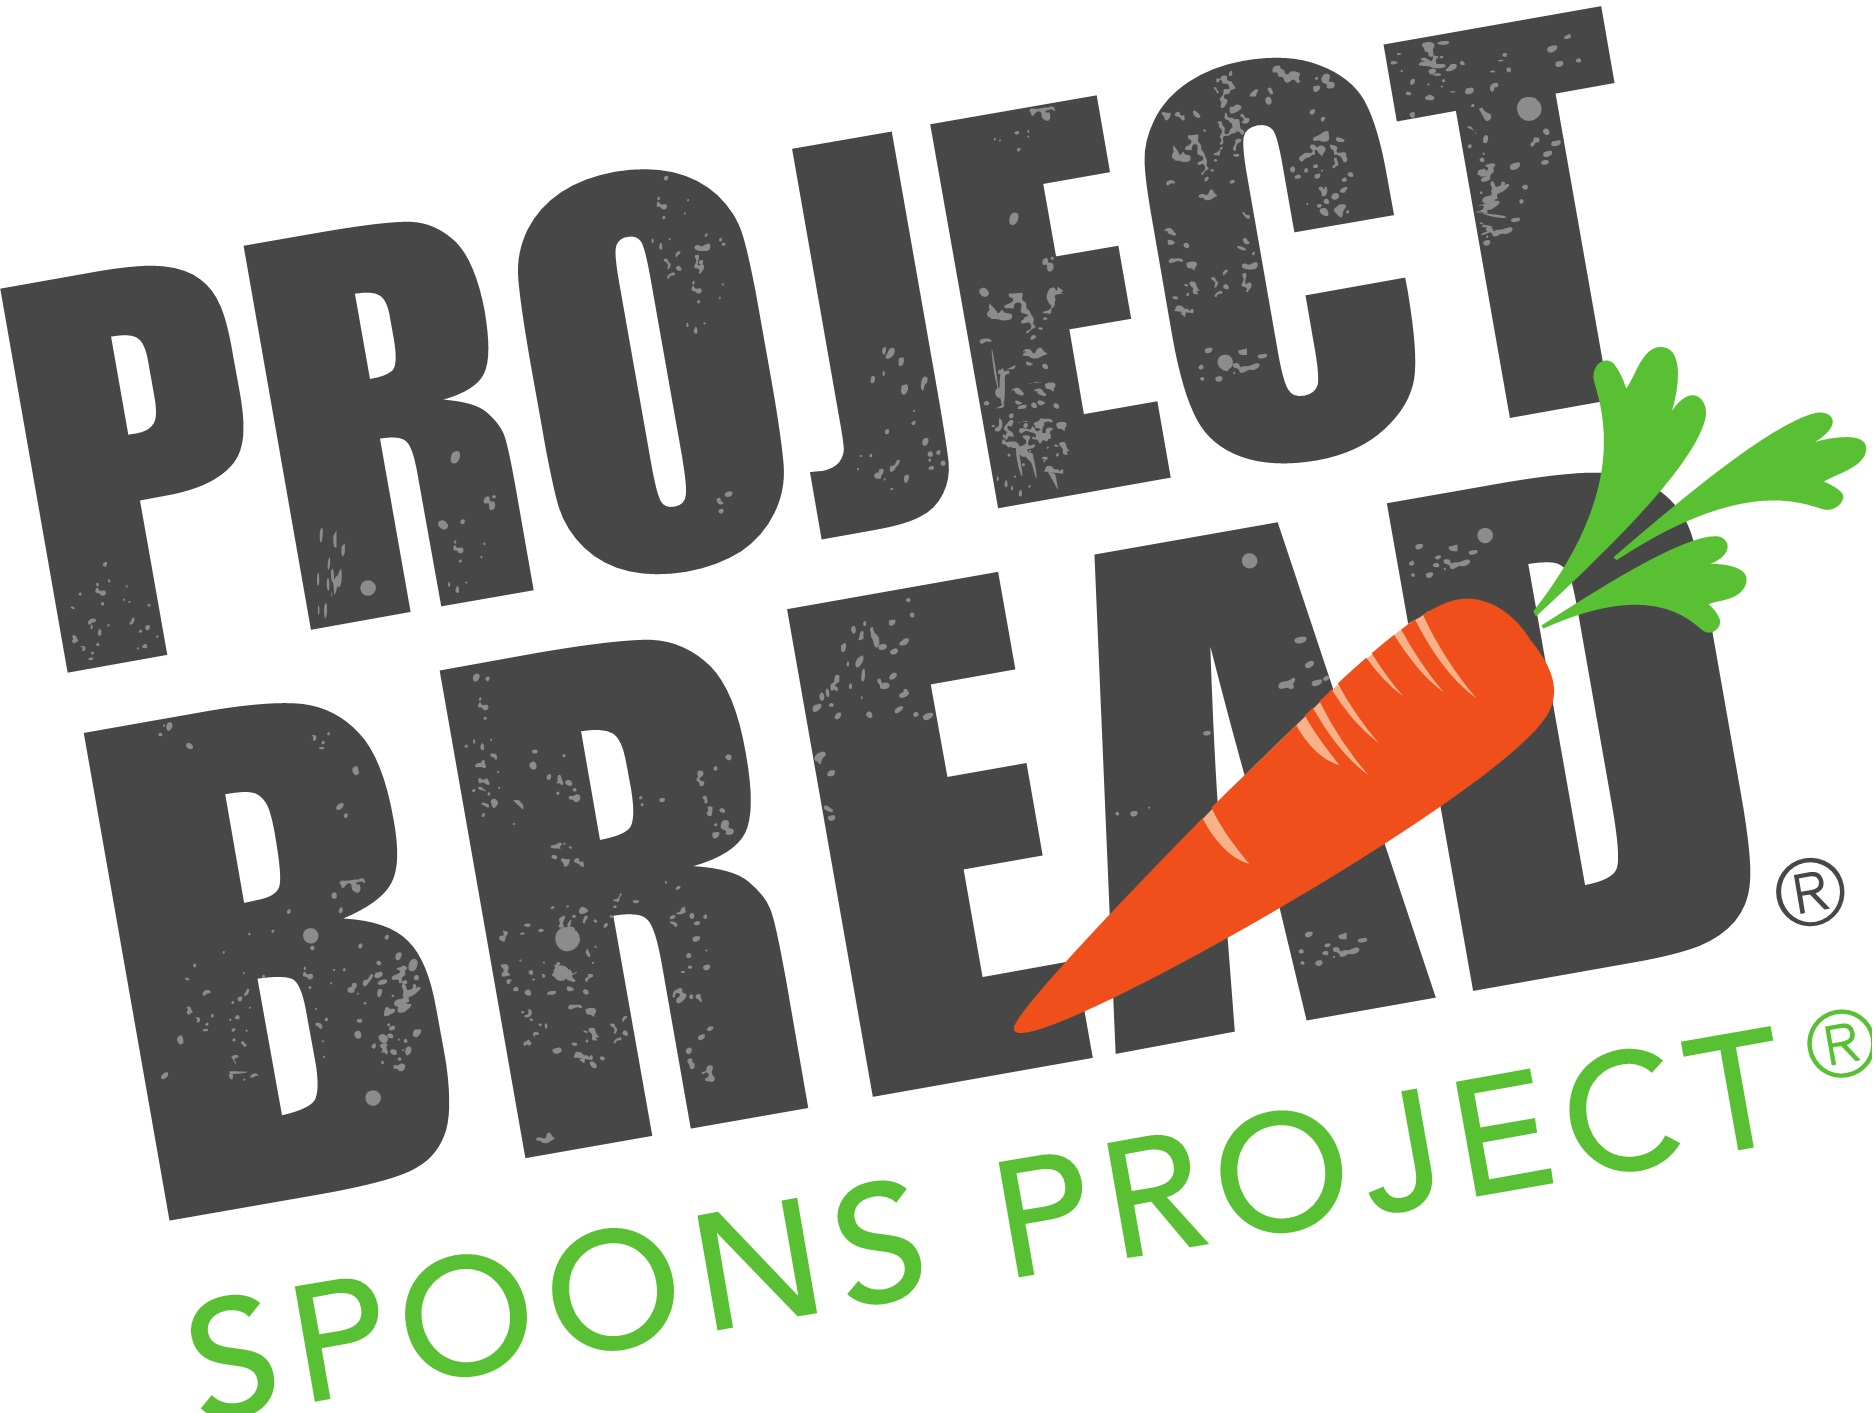 Jordan's Furniture partners with Project Bread's 2017 Holiday Spoons Program